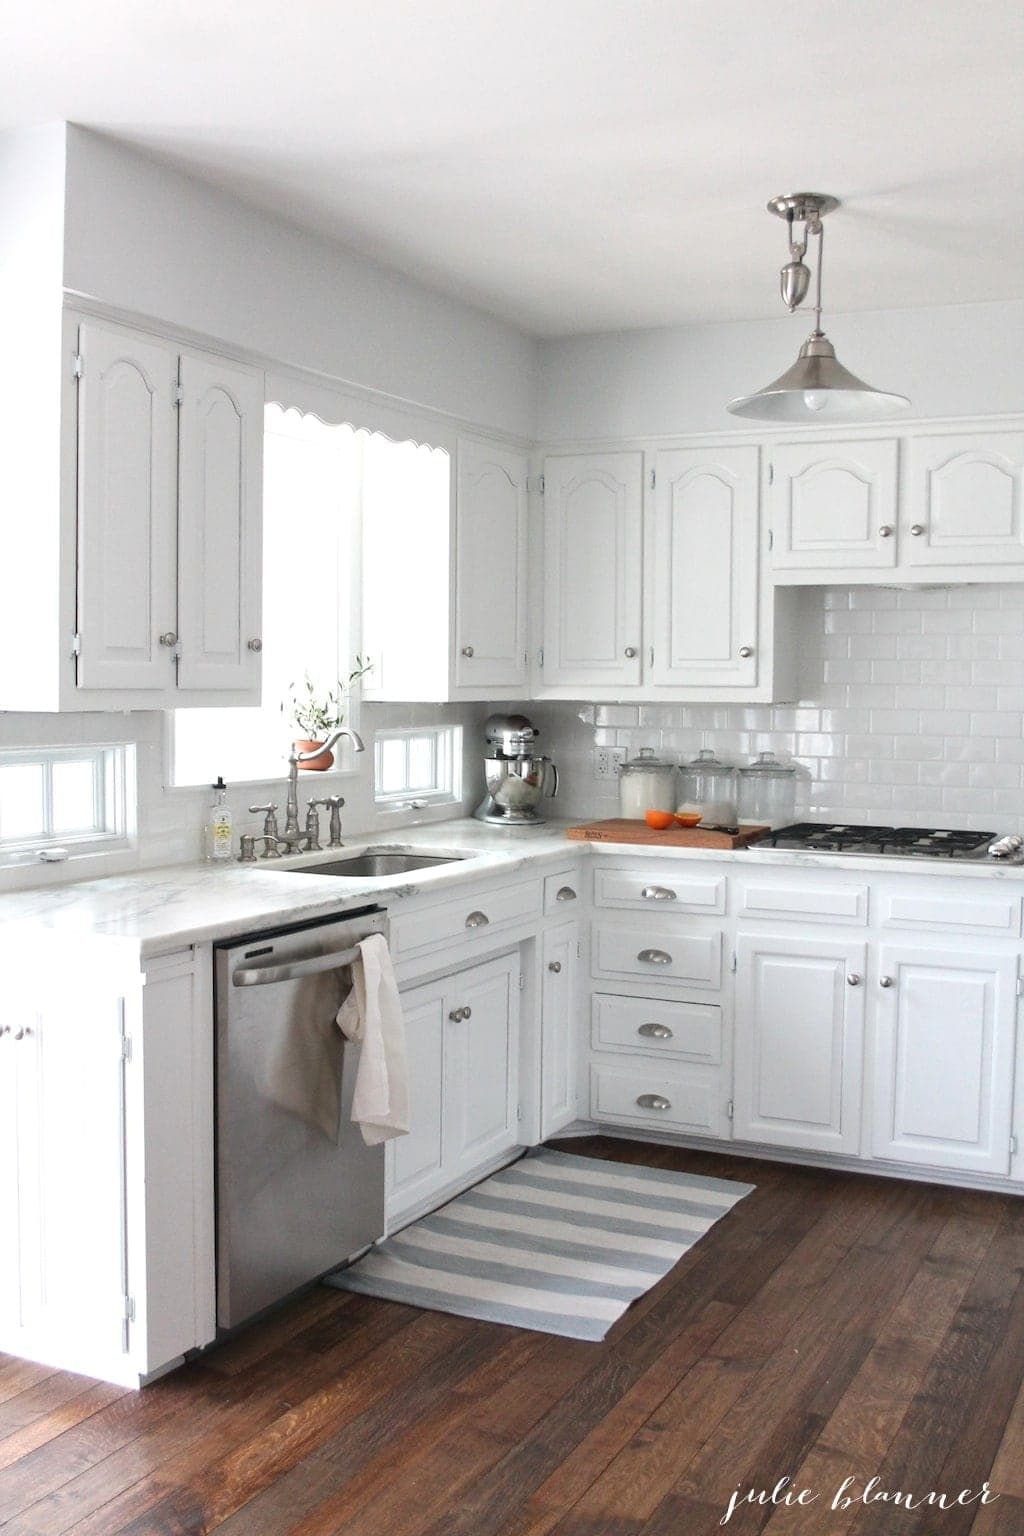 The risks benefits of marble countertops for Kitchen ideas grey and white